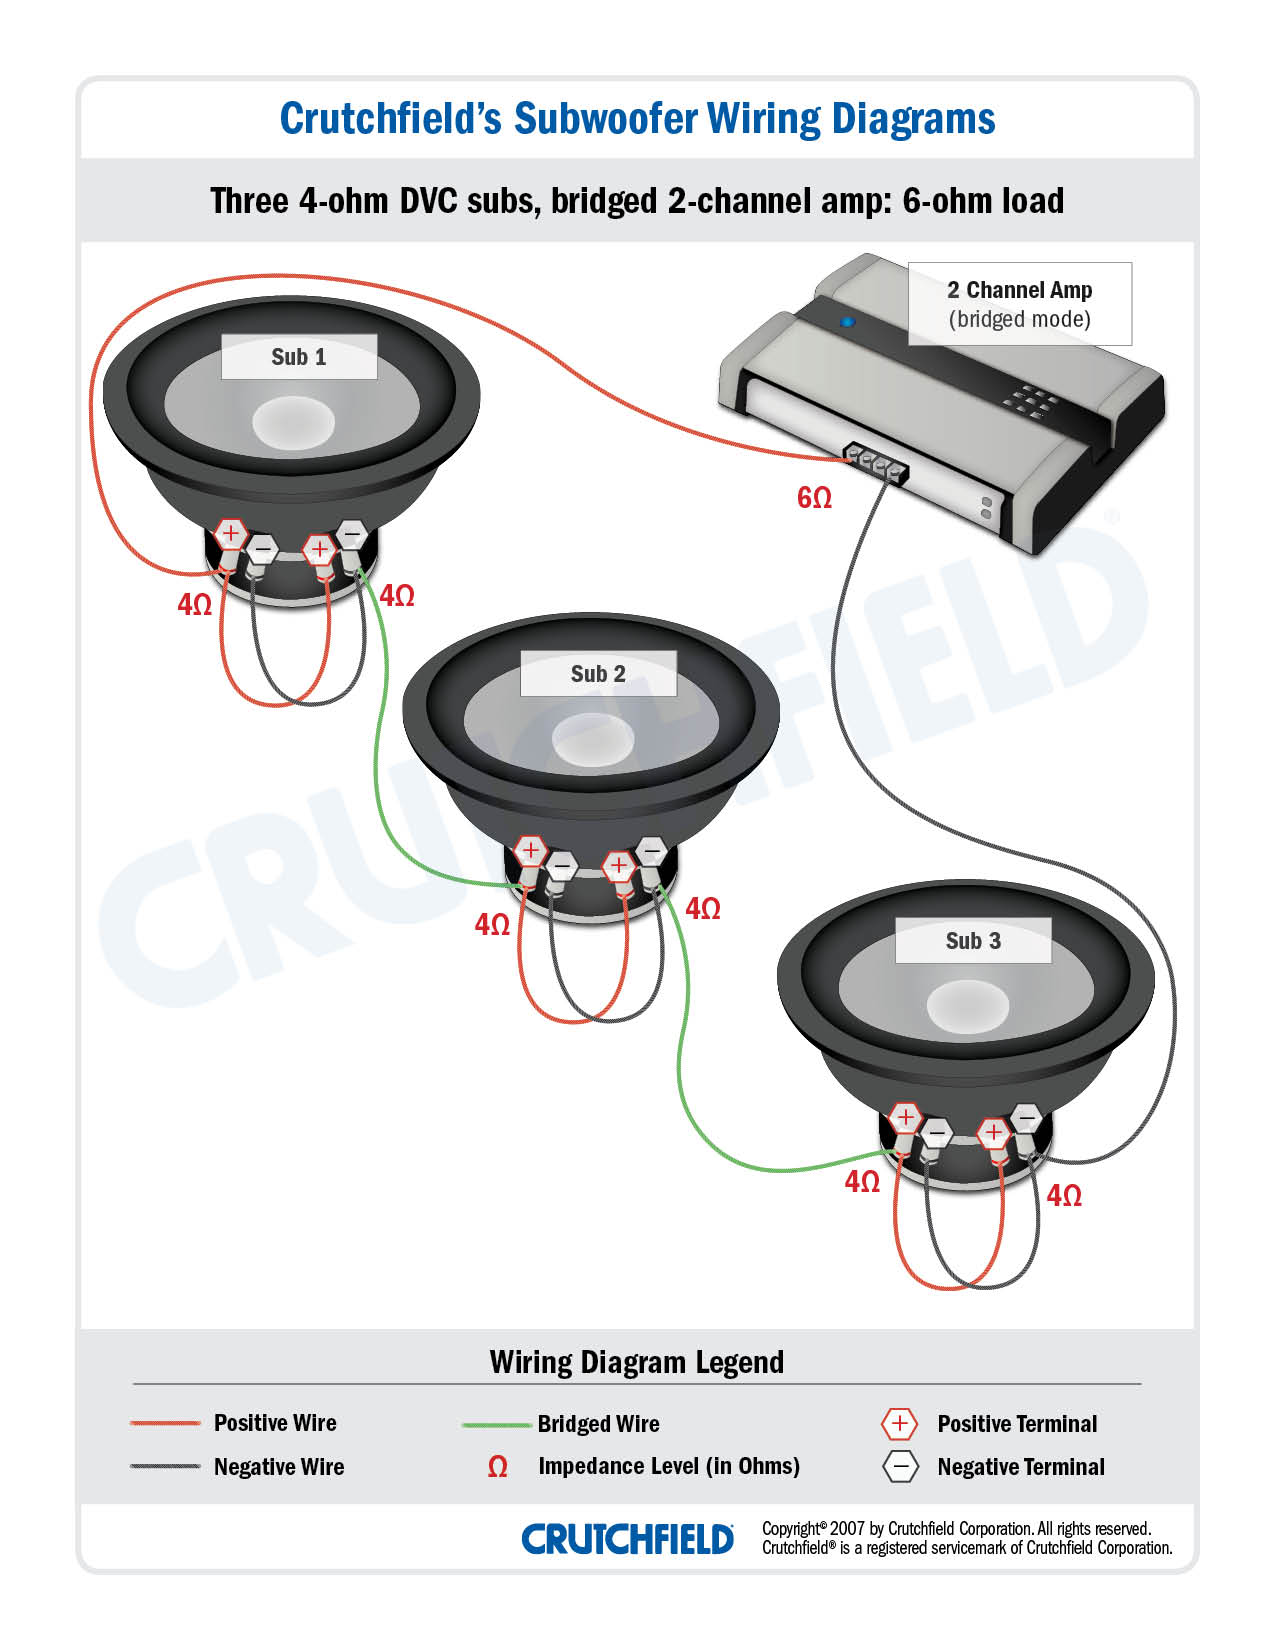 3 DVC 4 ohm 2 ch wiring subwoofers what's all this about ohms? dual 2 ohm wiring diagram at cos-gaming.co